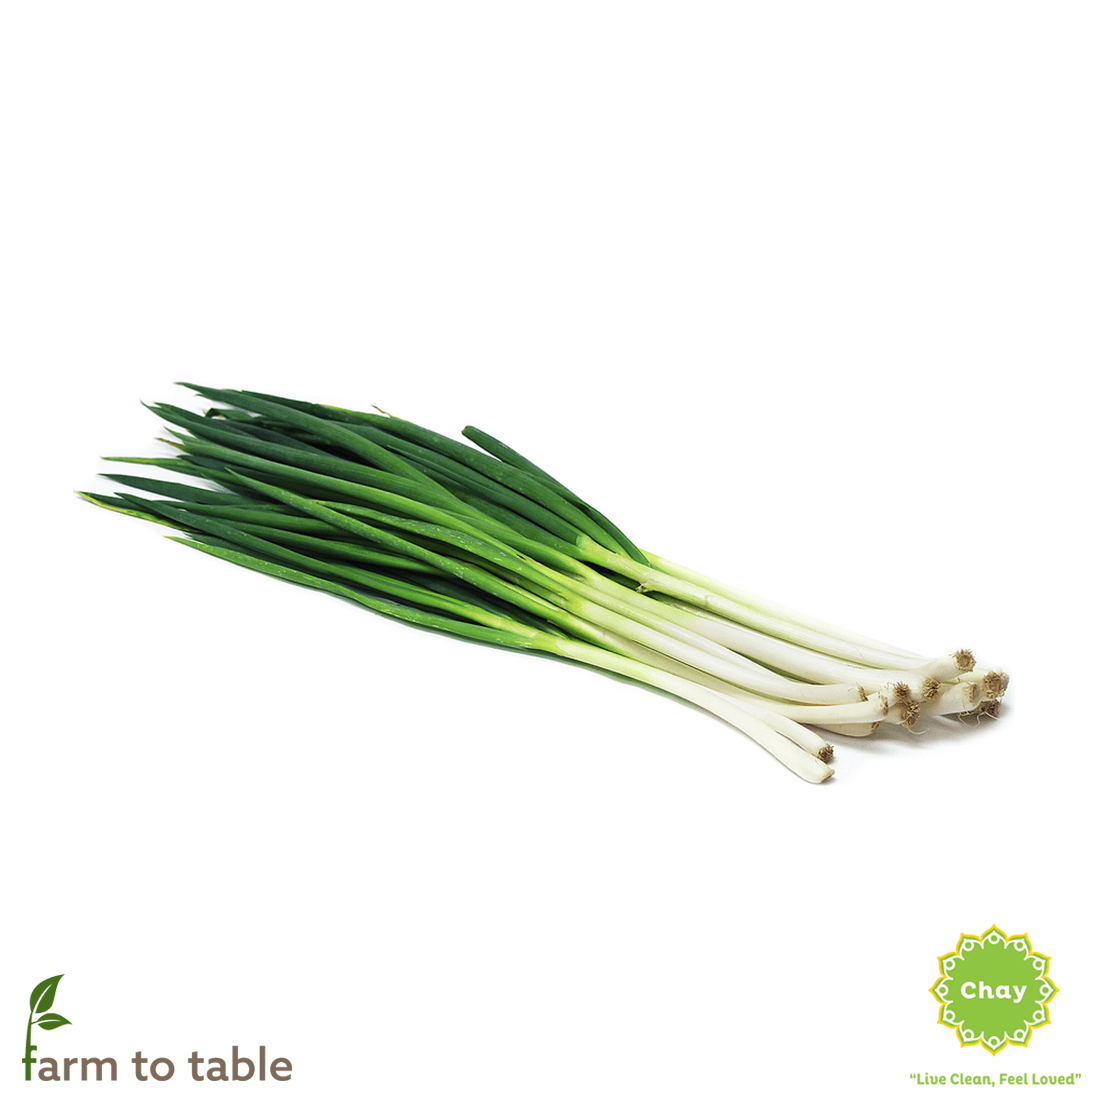 Spring onion 0,1 kg en House of Chay